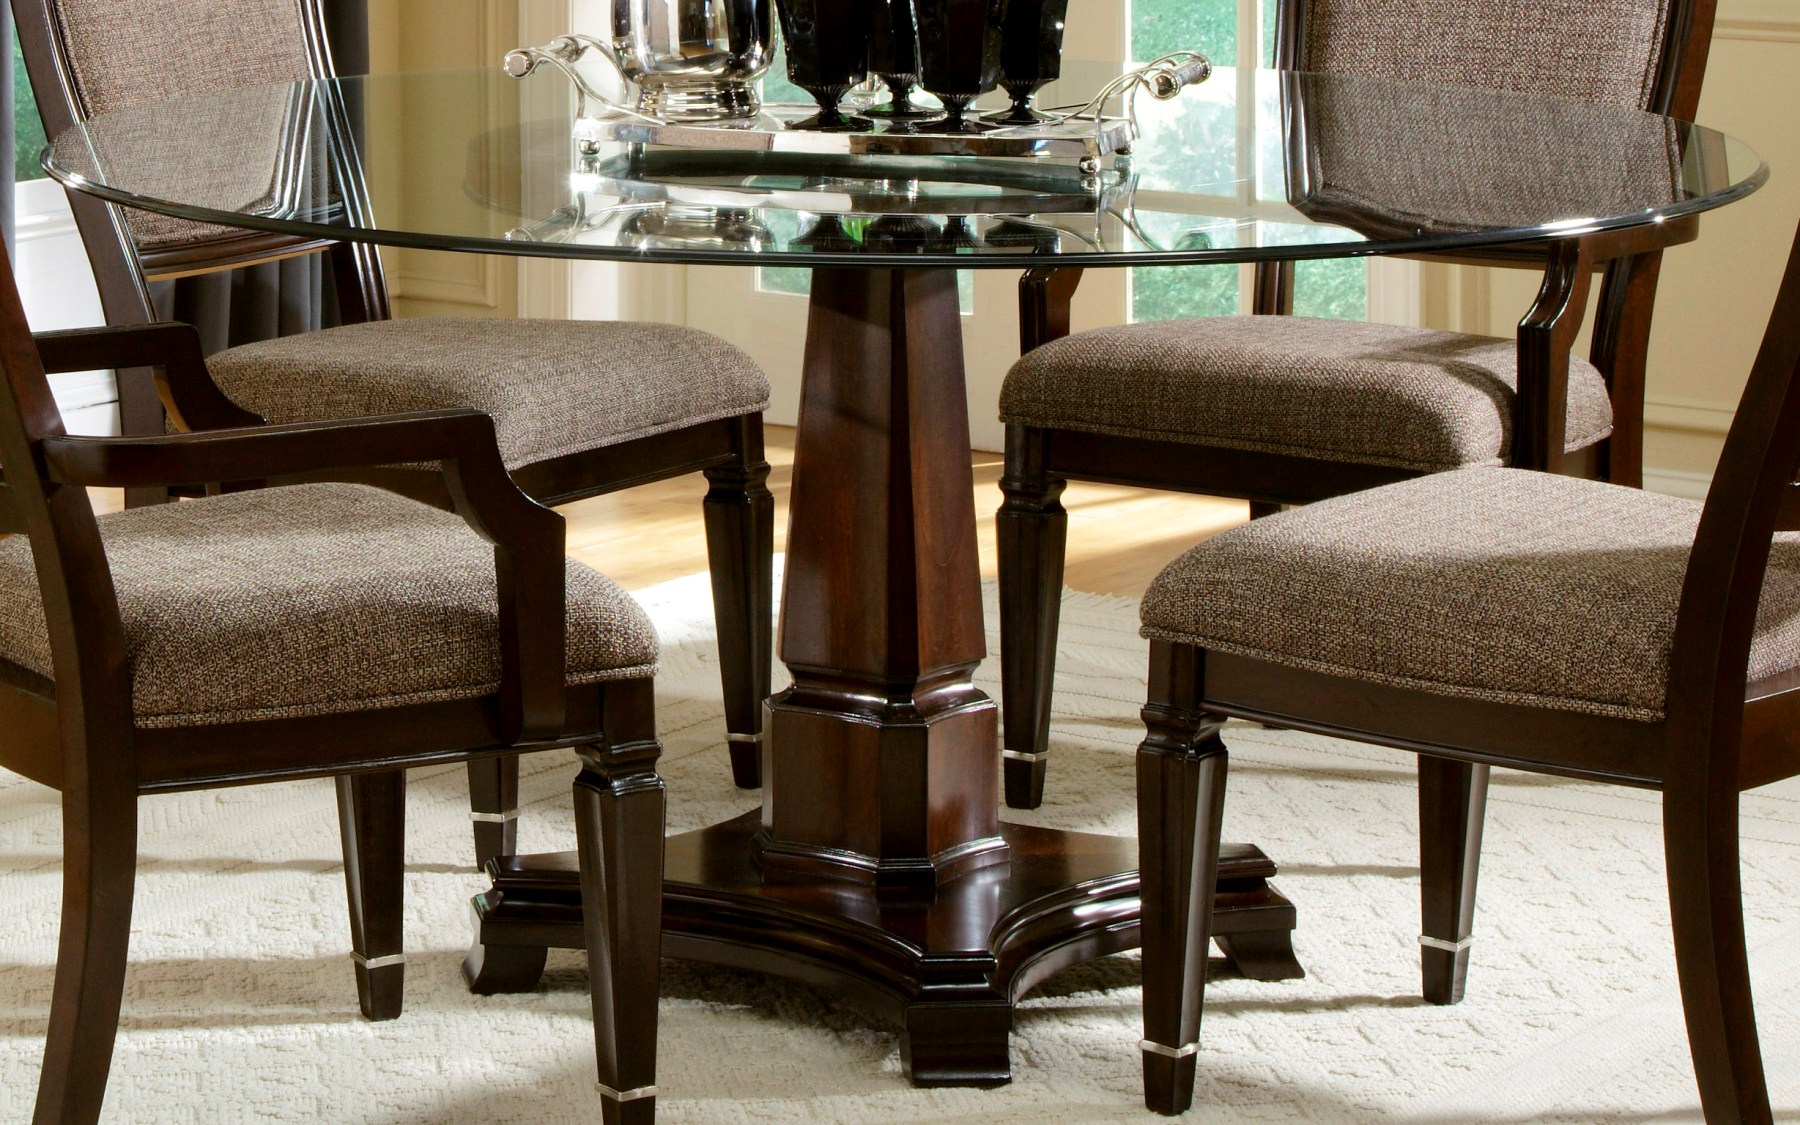 Dining room table bases for glass tops - Brown Wooden Dining Table With Round Glass On Top